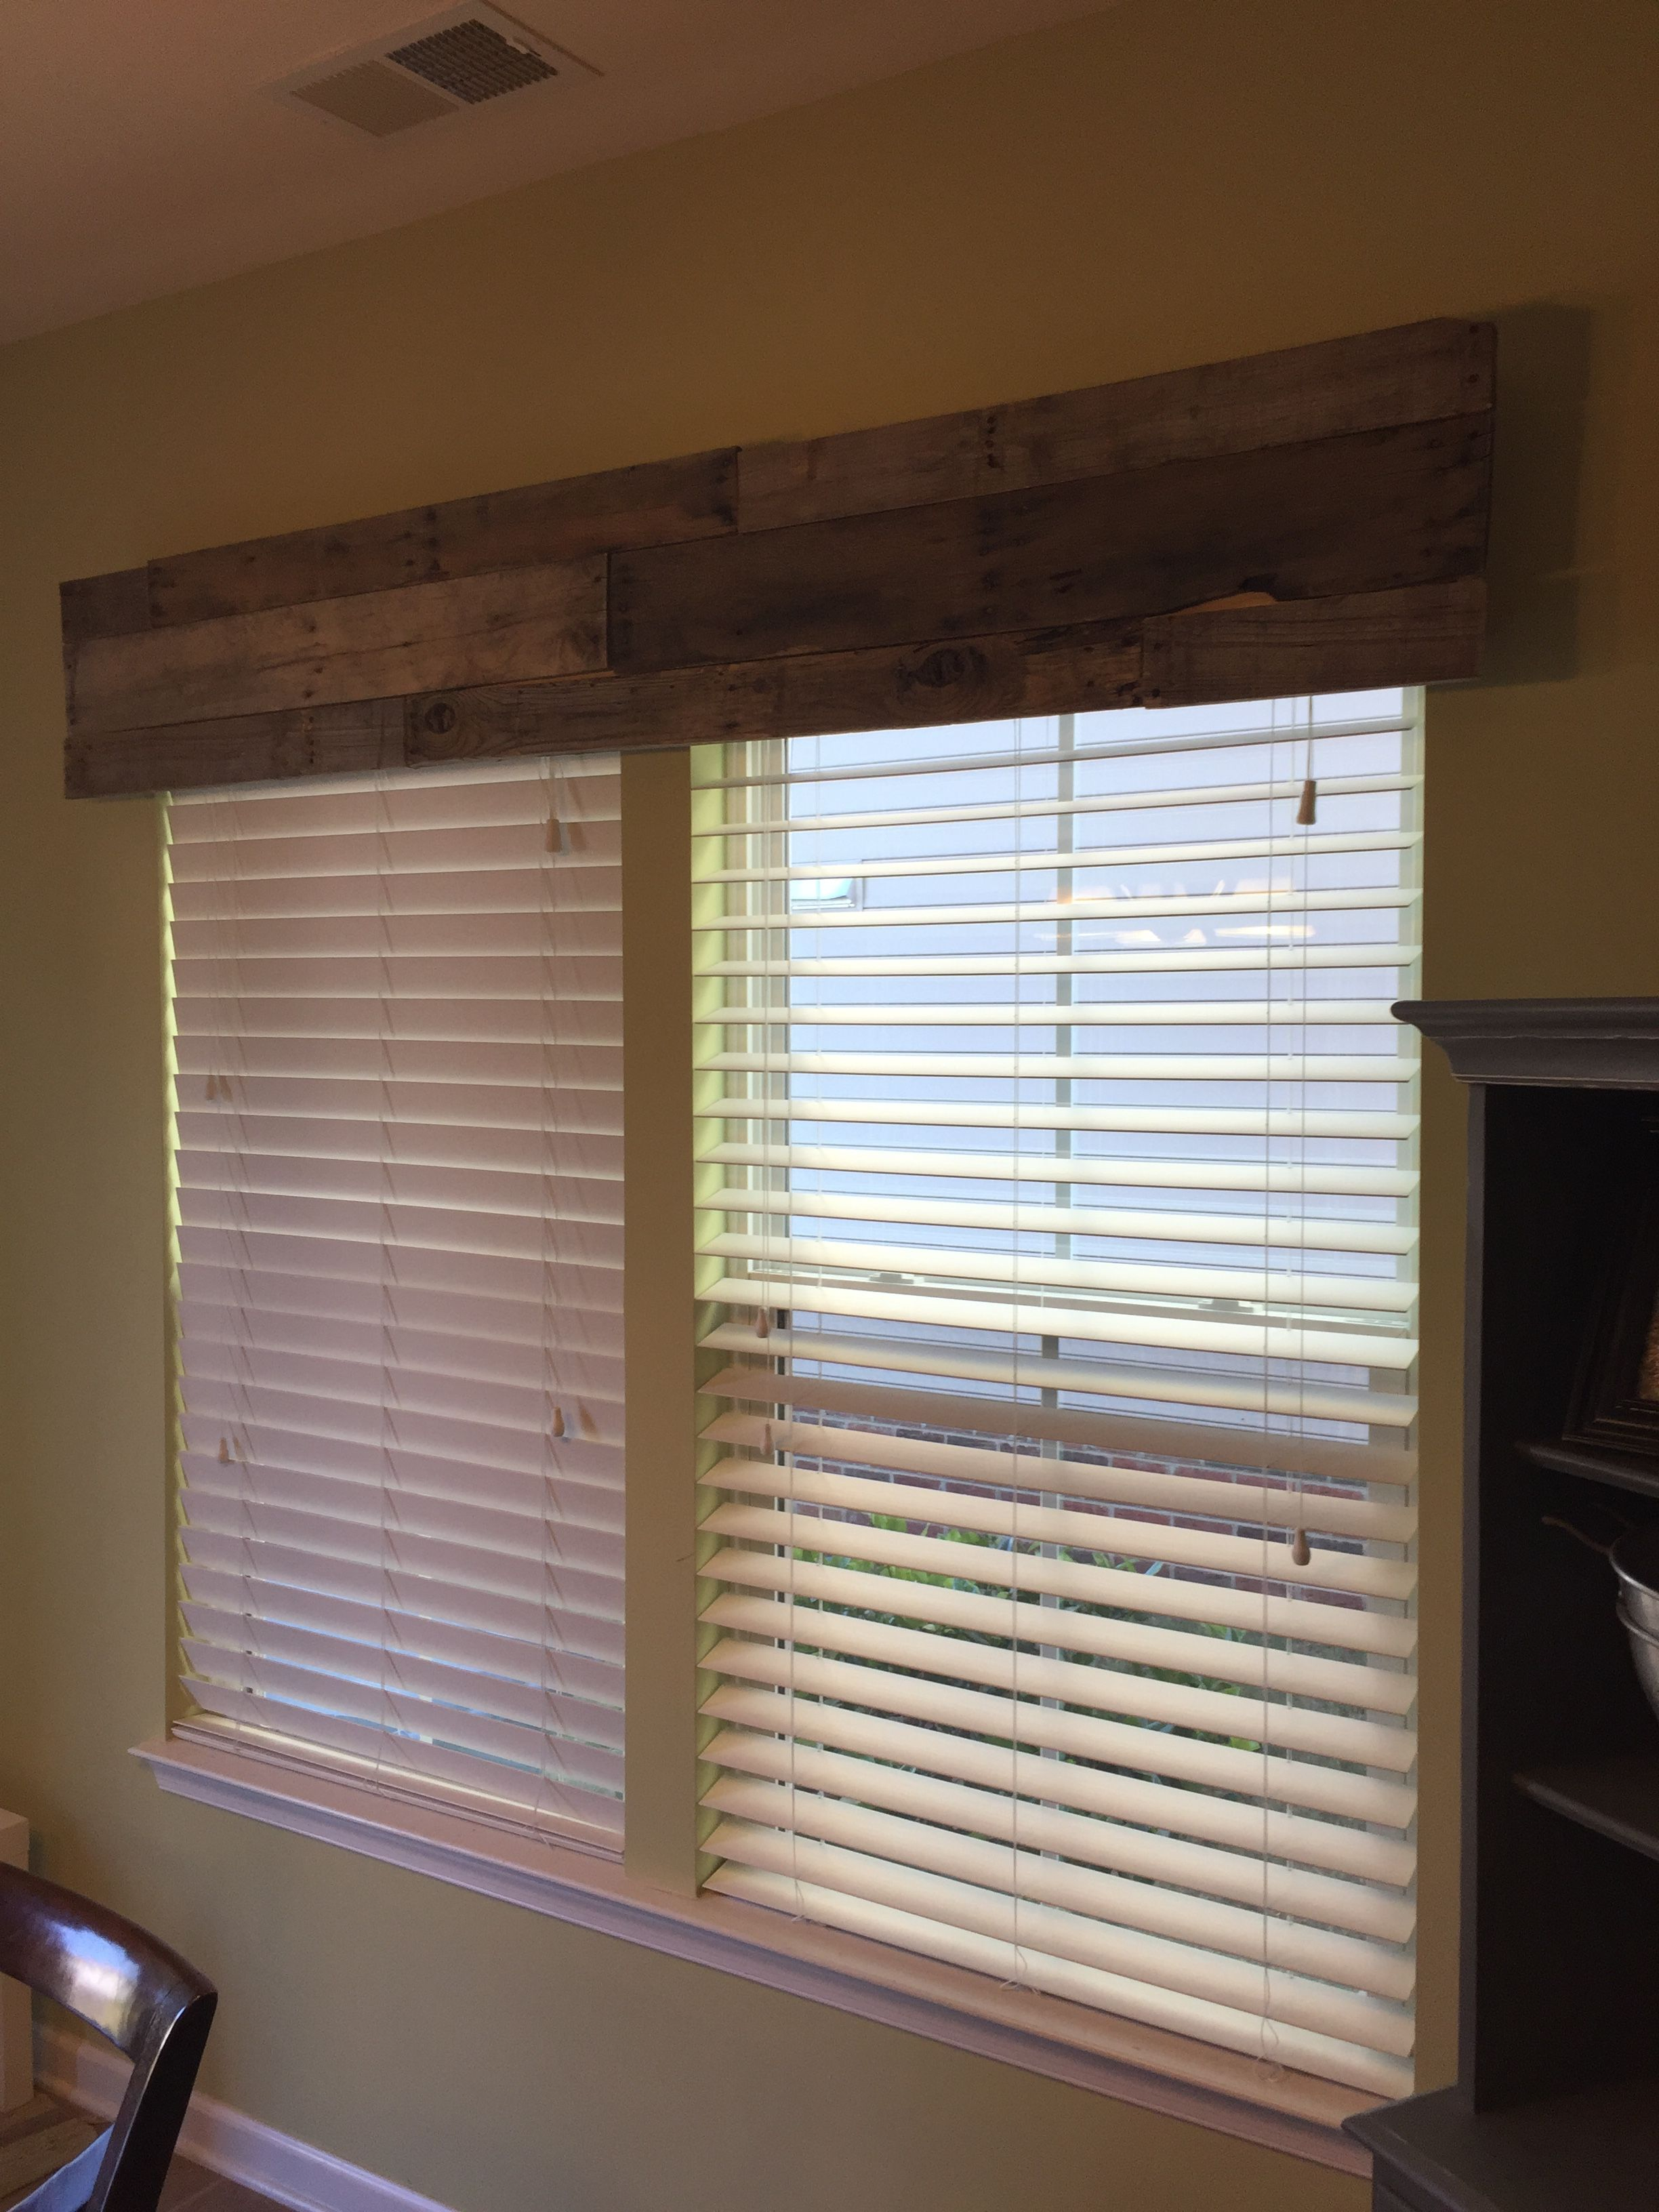 Pallet valance rustic chic pinterest valance pallets and window